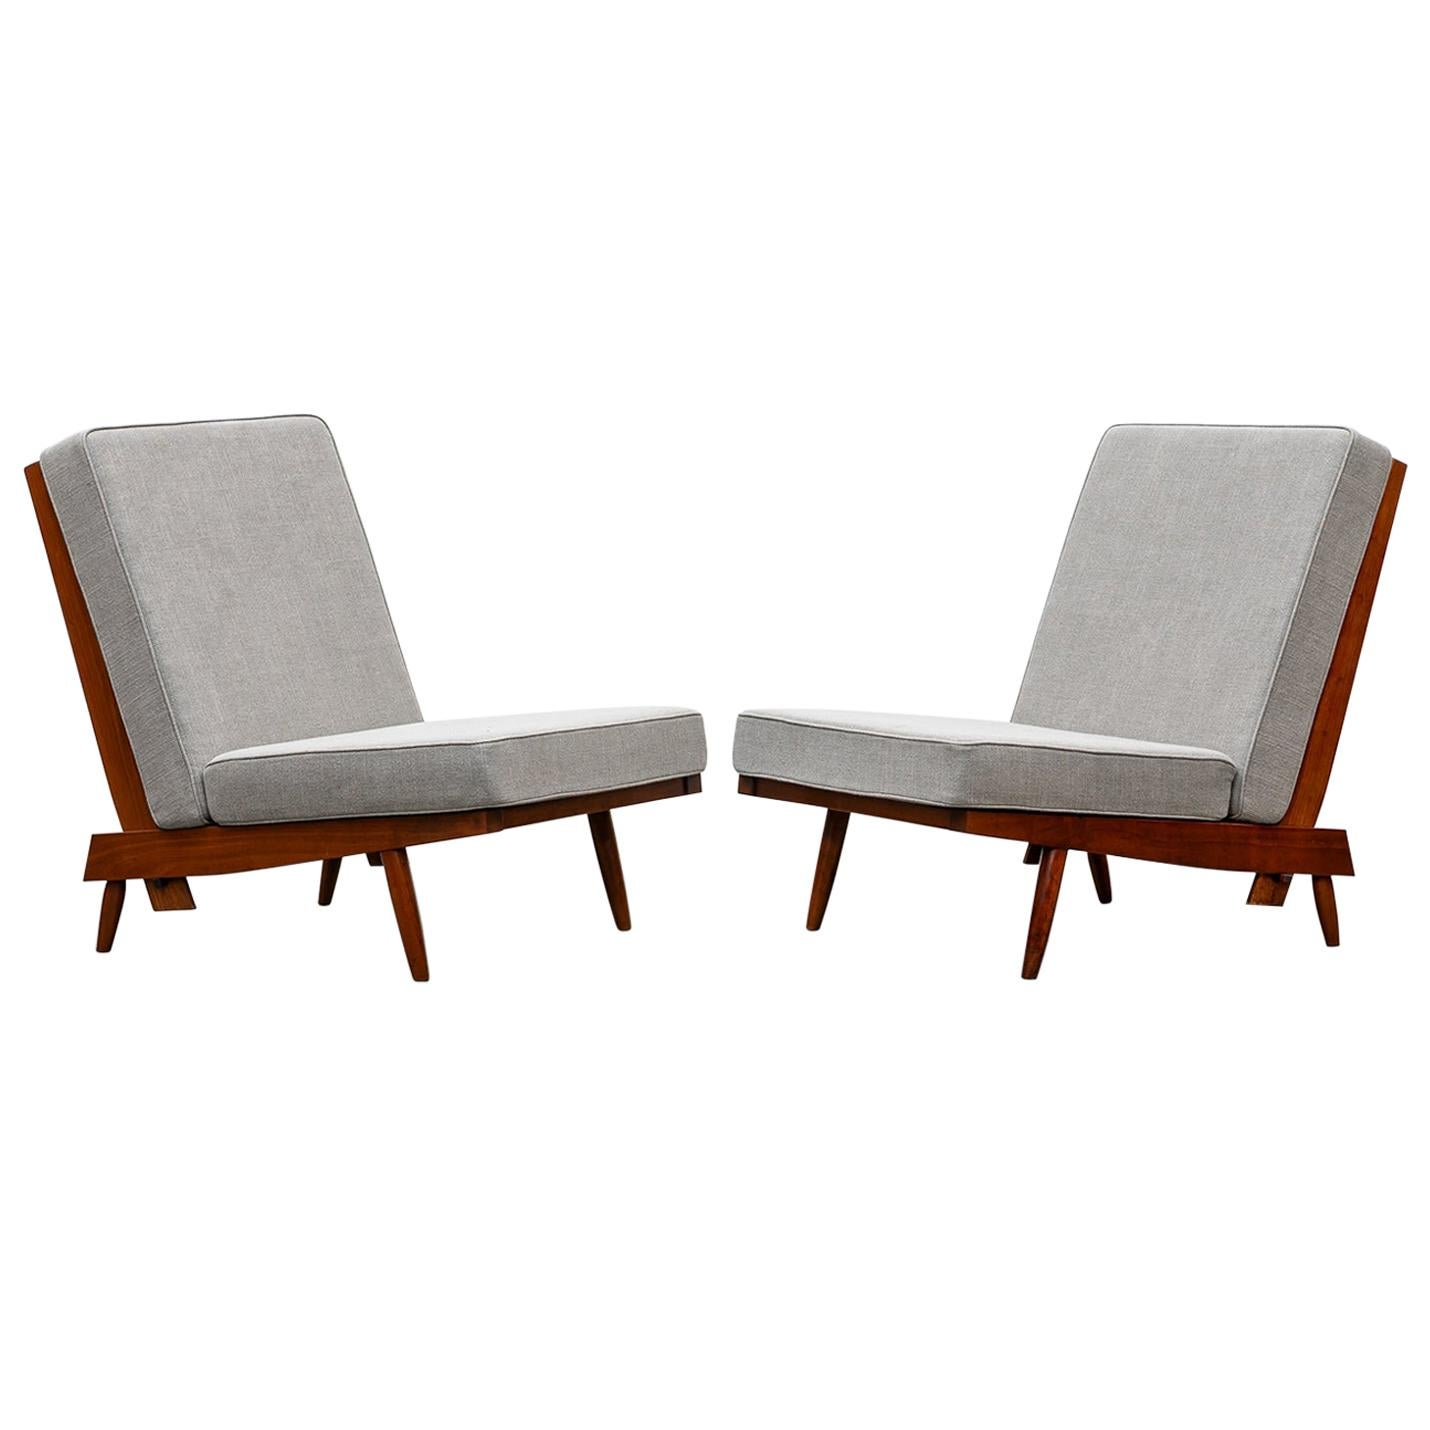 1960s Walnut, Grey Upholstery Lounge Chairs by George Nakashima 'd'